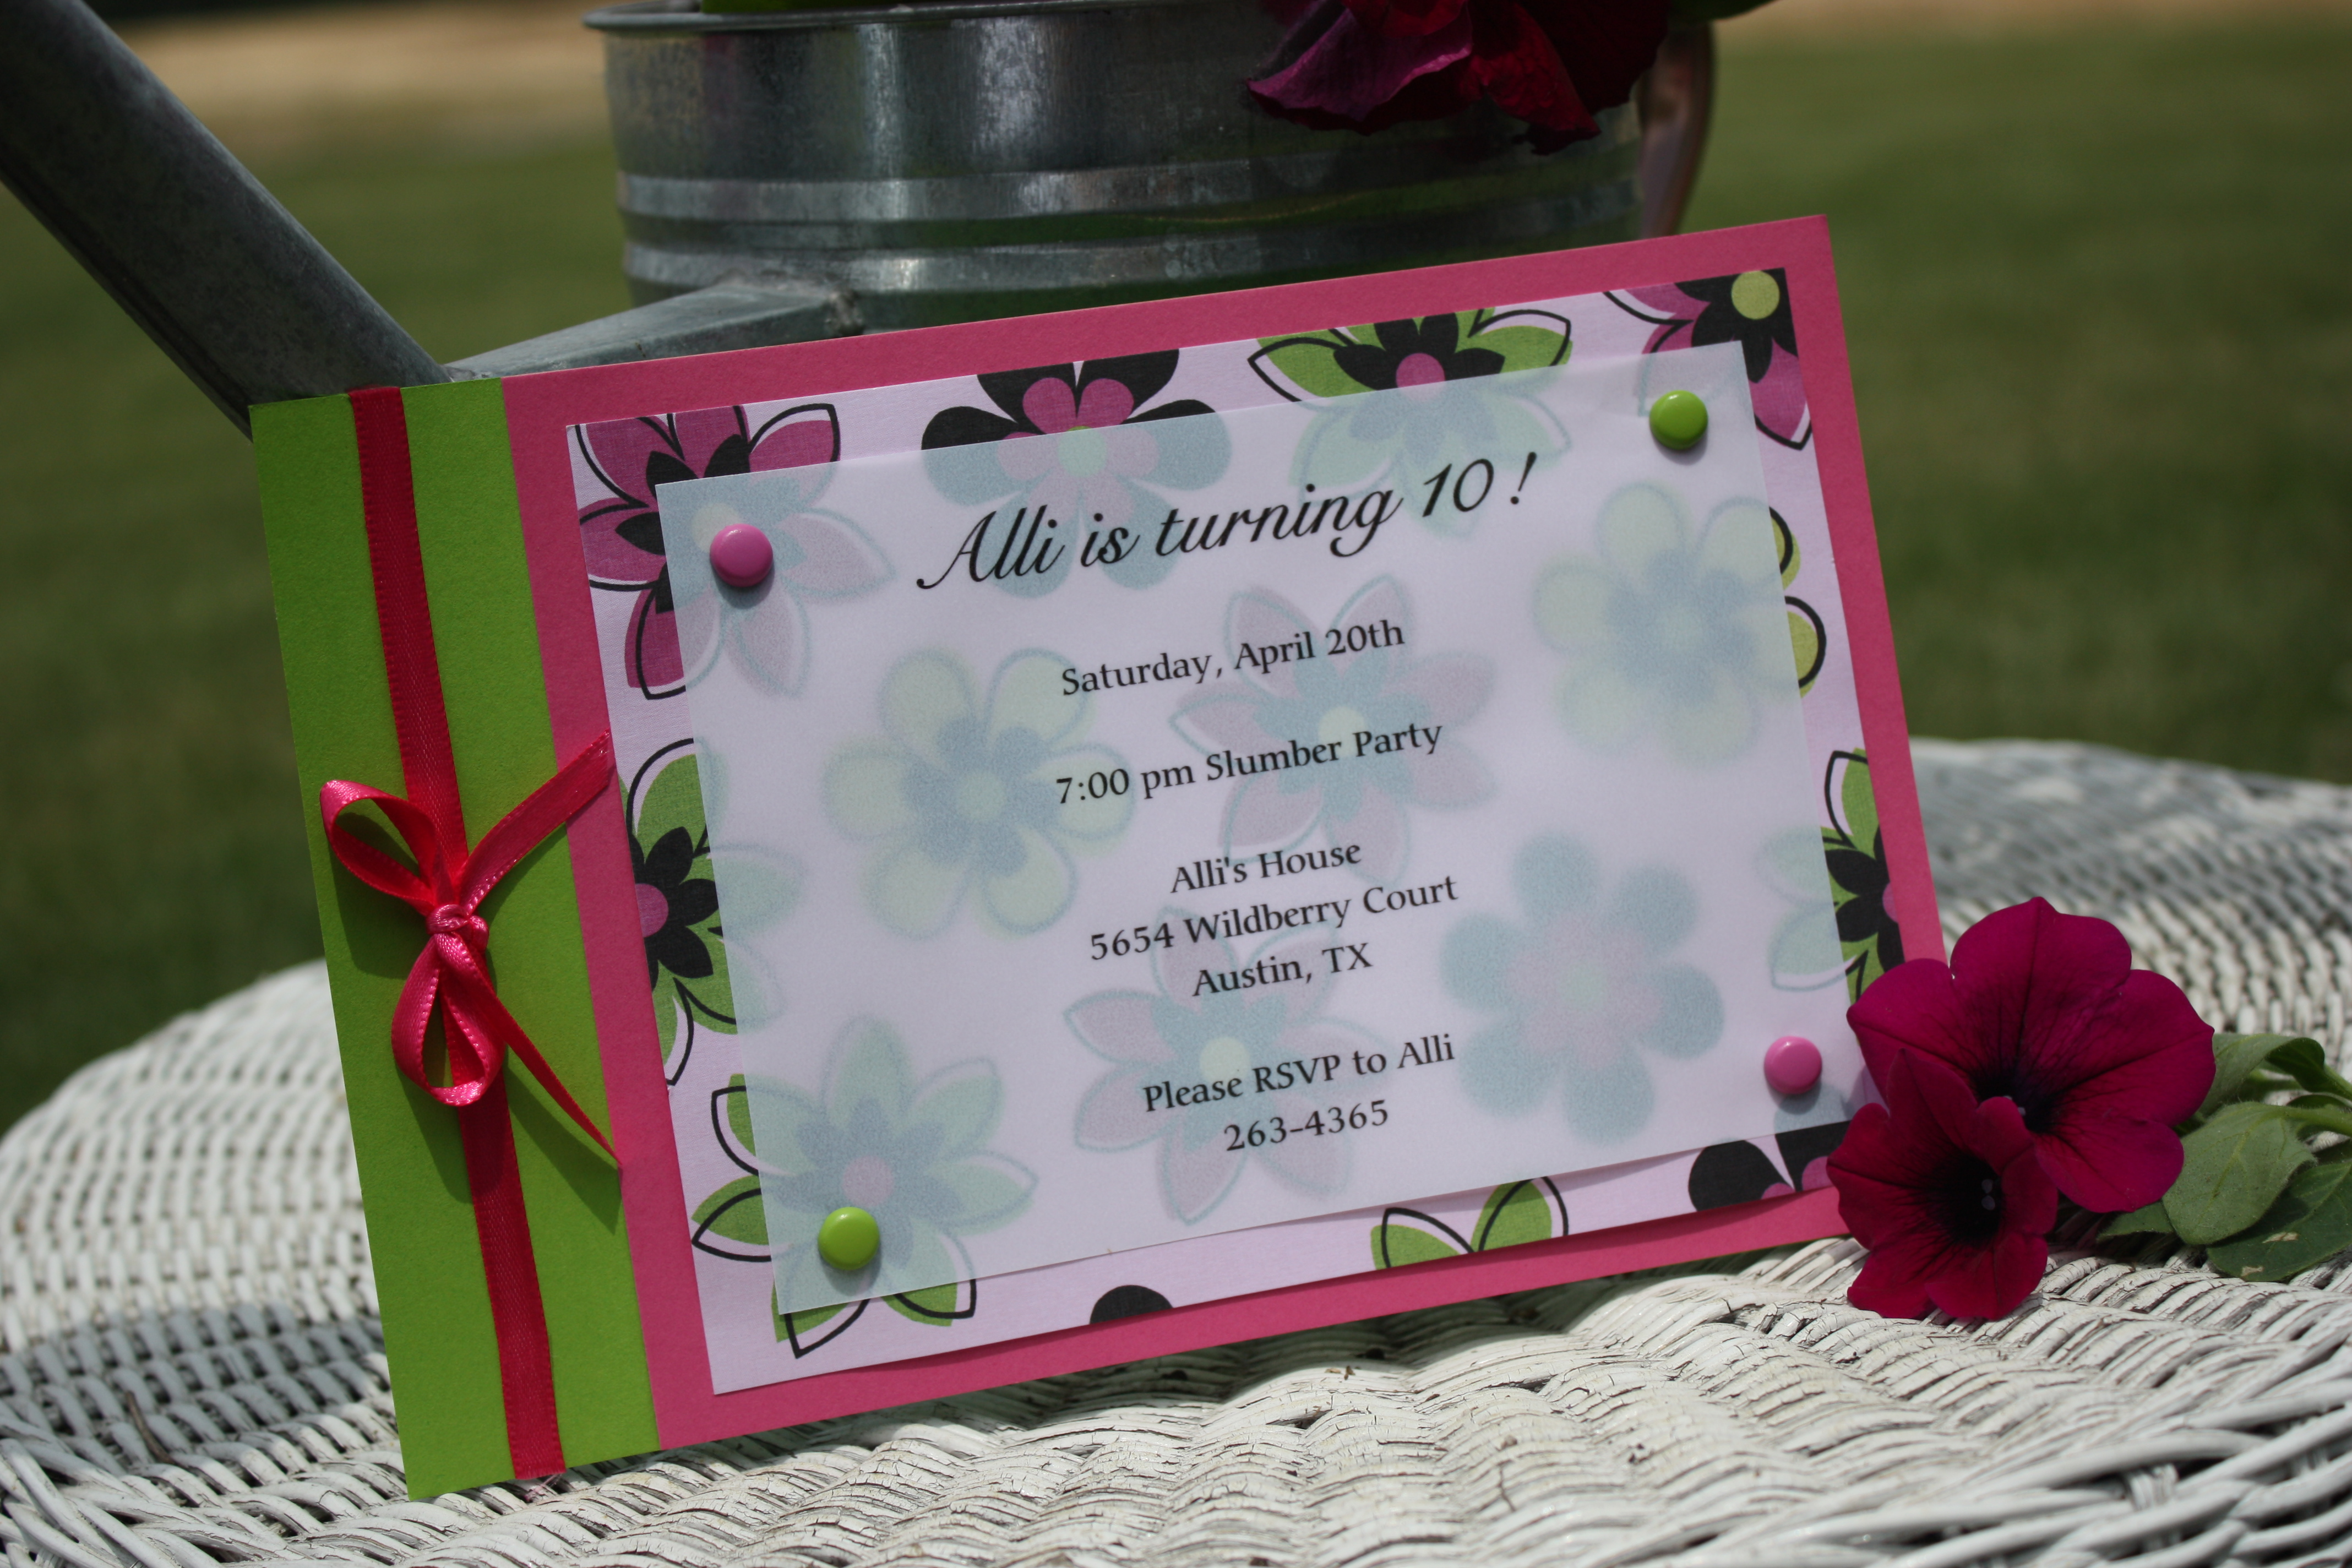 design your own photo birthday invitations ; design-your-own-birthday-invitations-to-inspire-you-How-To-Make-Your-Own-Birthday-Invitations-Looks-Interesting-3